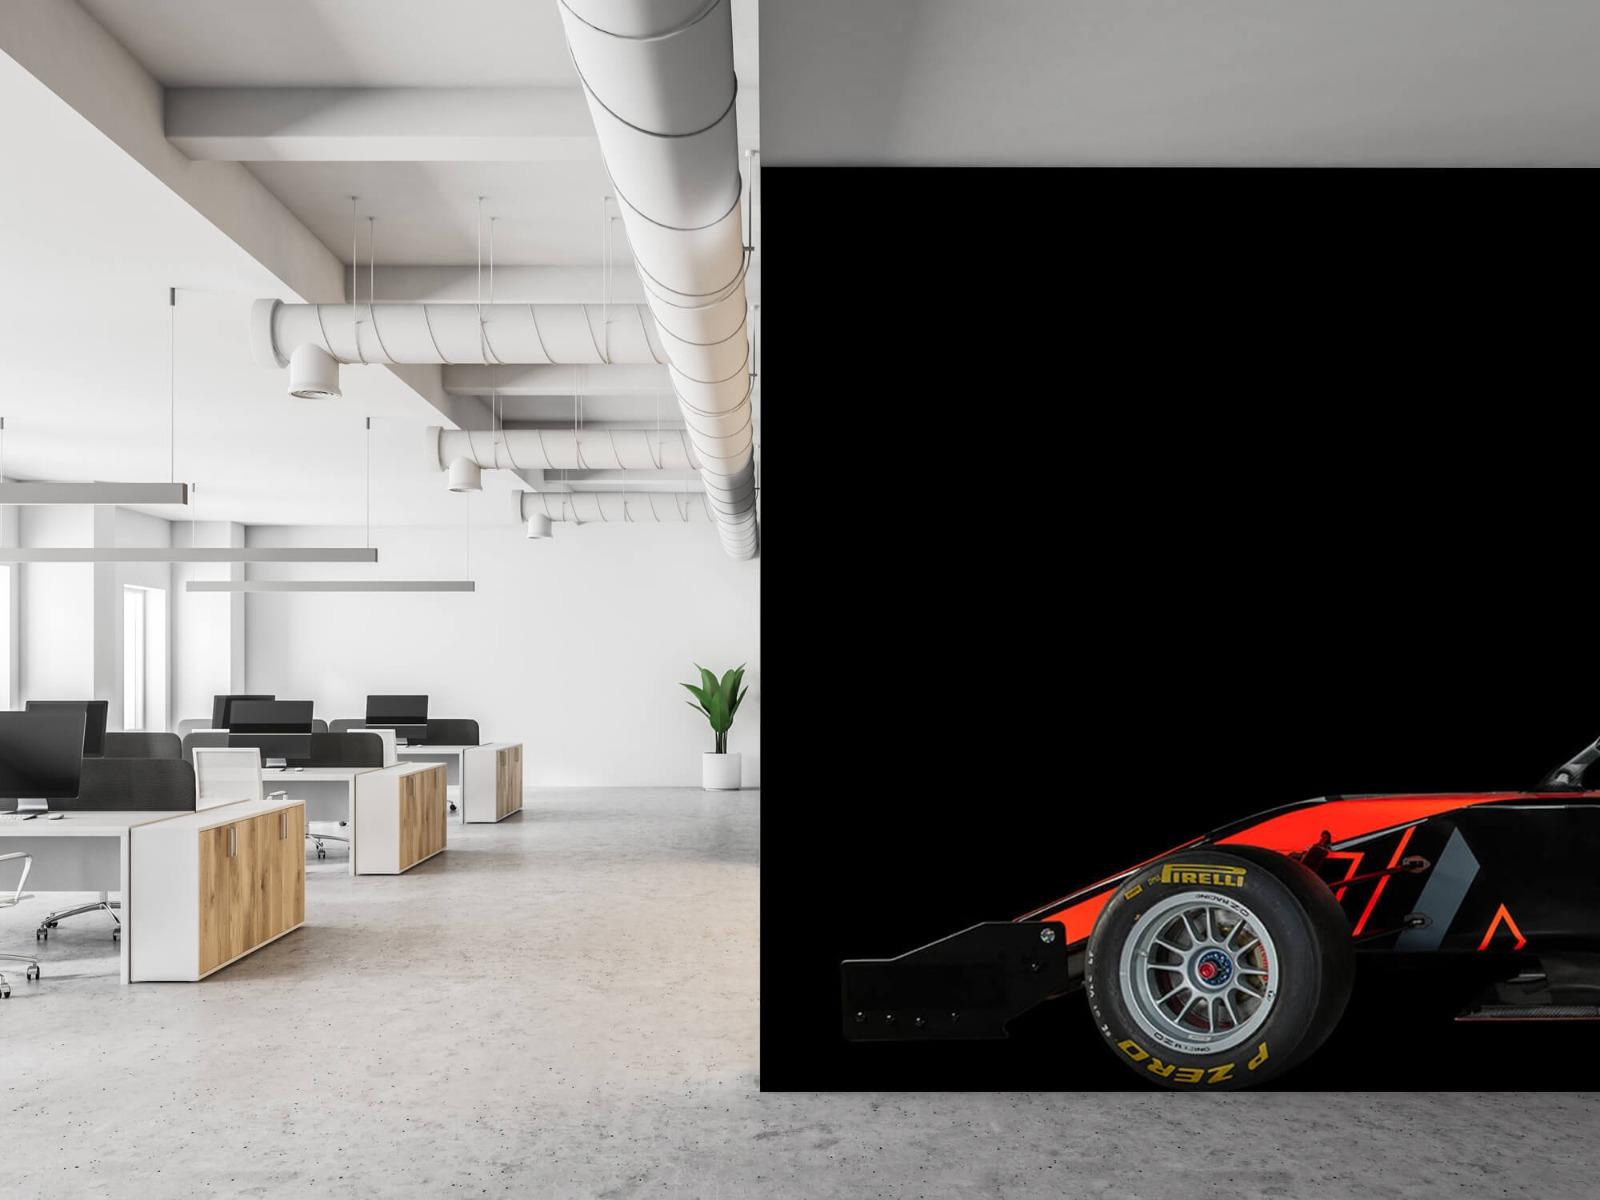 Sportauto's - Formule 3 - Lower side view - dark - Tienerkamer 21